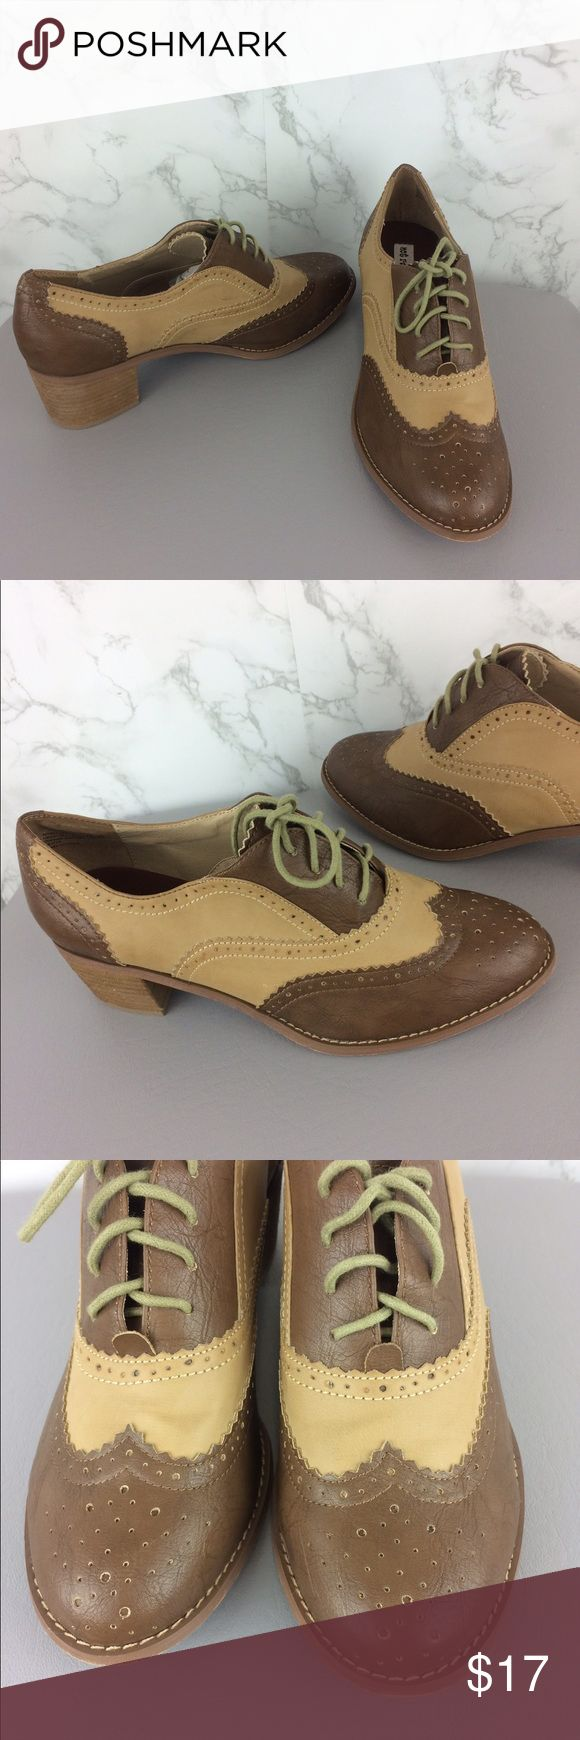 NOT RATED Oxford Vintage Style Shoes Size 9 1/2 NOT RATED brand. Oxford lace up Vintage Style shoes. Tan and brown. Size 9 1/2. Like new. Not Rated Shoes